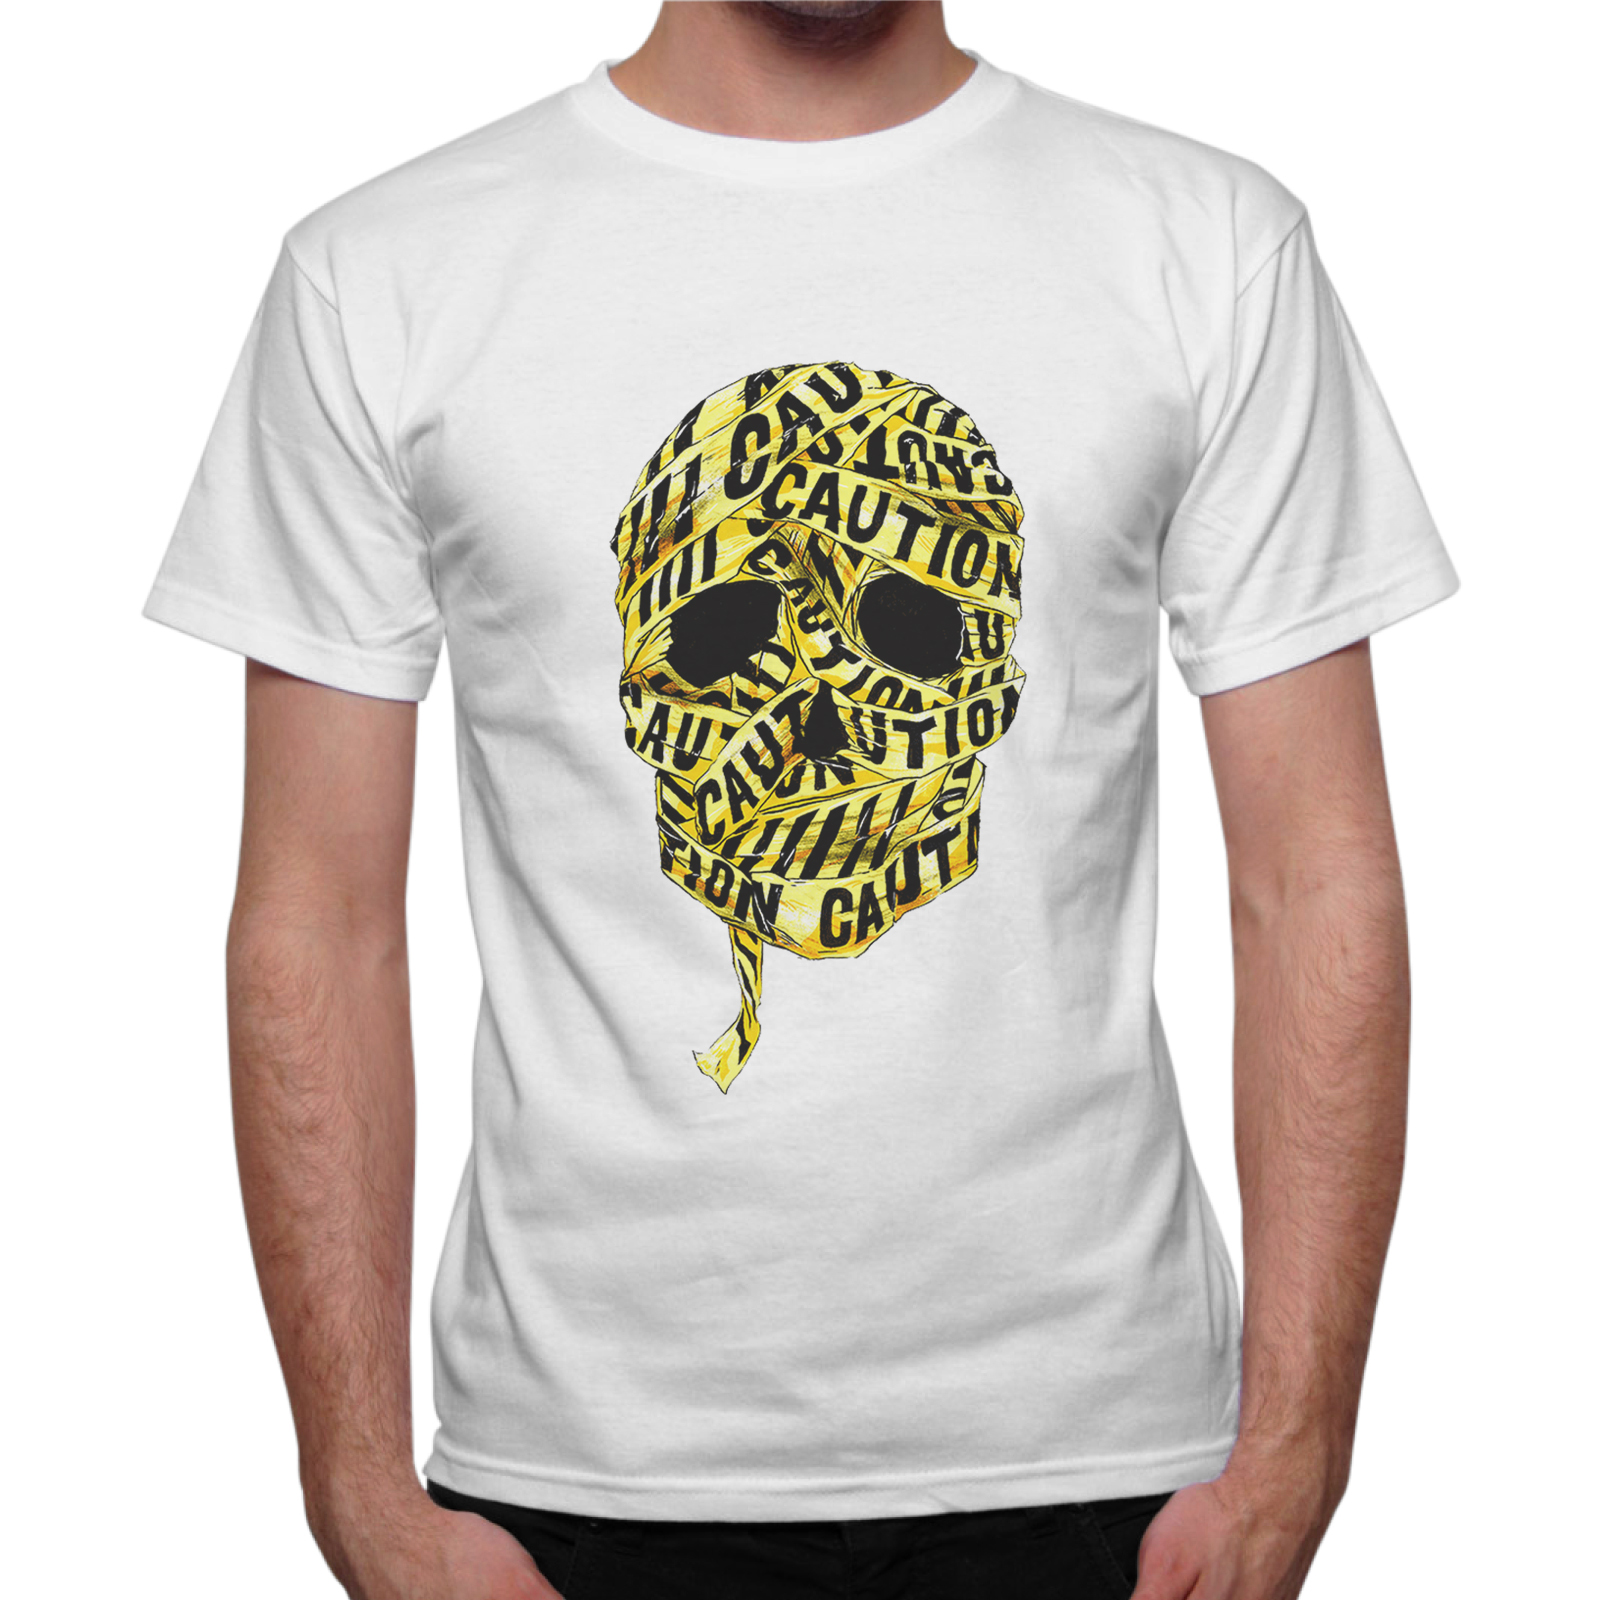 T-Shirt Uomo SKULL CAUTION